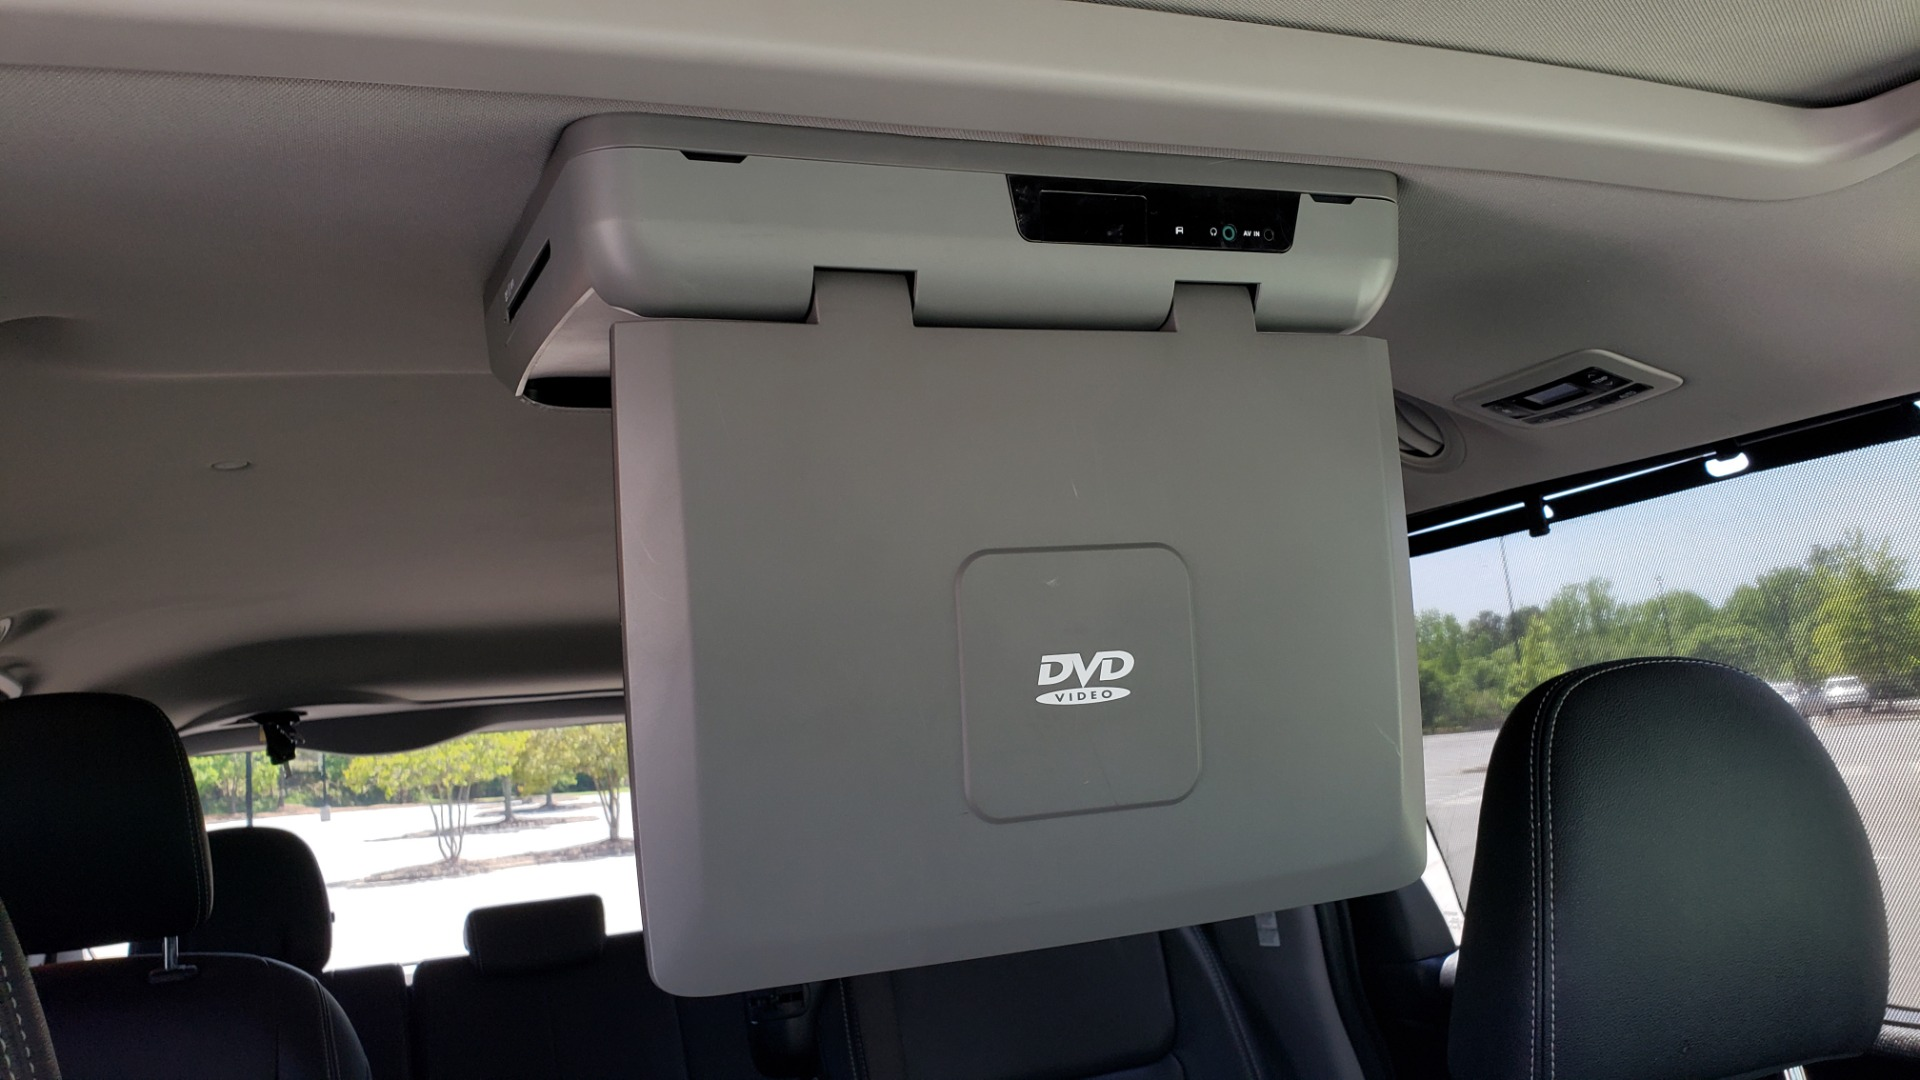 Used 2015 Toyota SIENNA SE 3.5L / FWD / 3-ROWS / 8-PASS / SUNROOF / DVD / REARVIEW for sale $21,995 at Formula Imports in Charlotte NC 28227 64